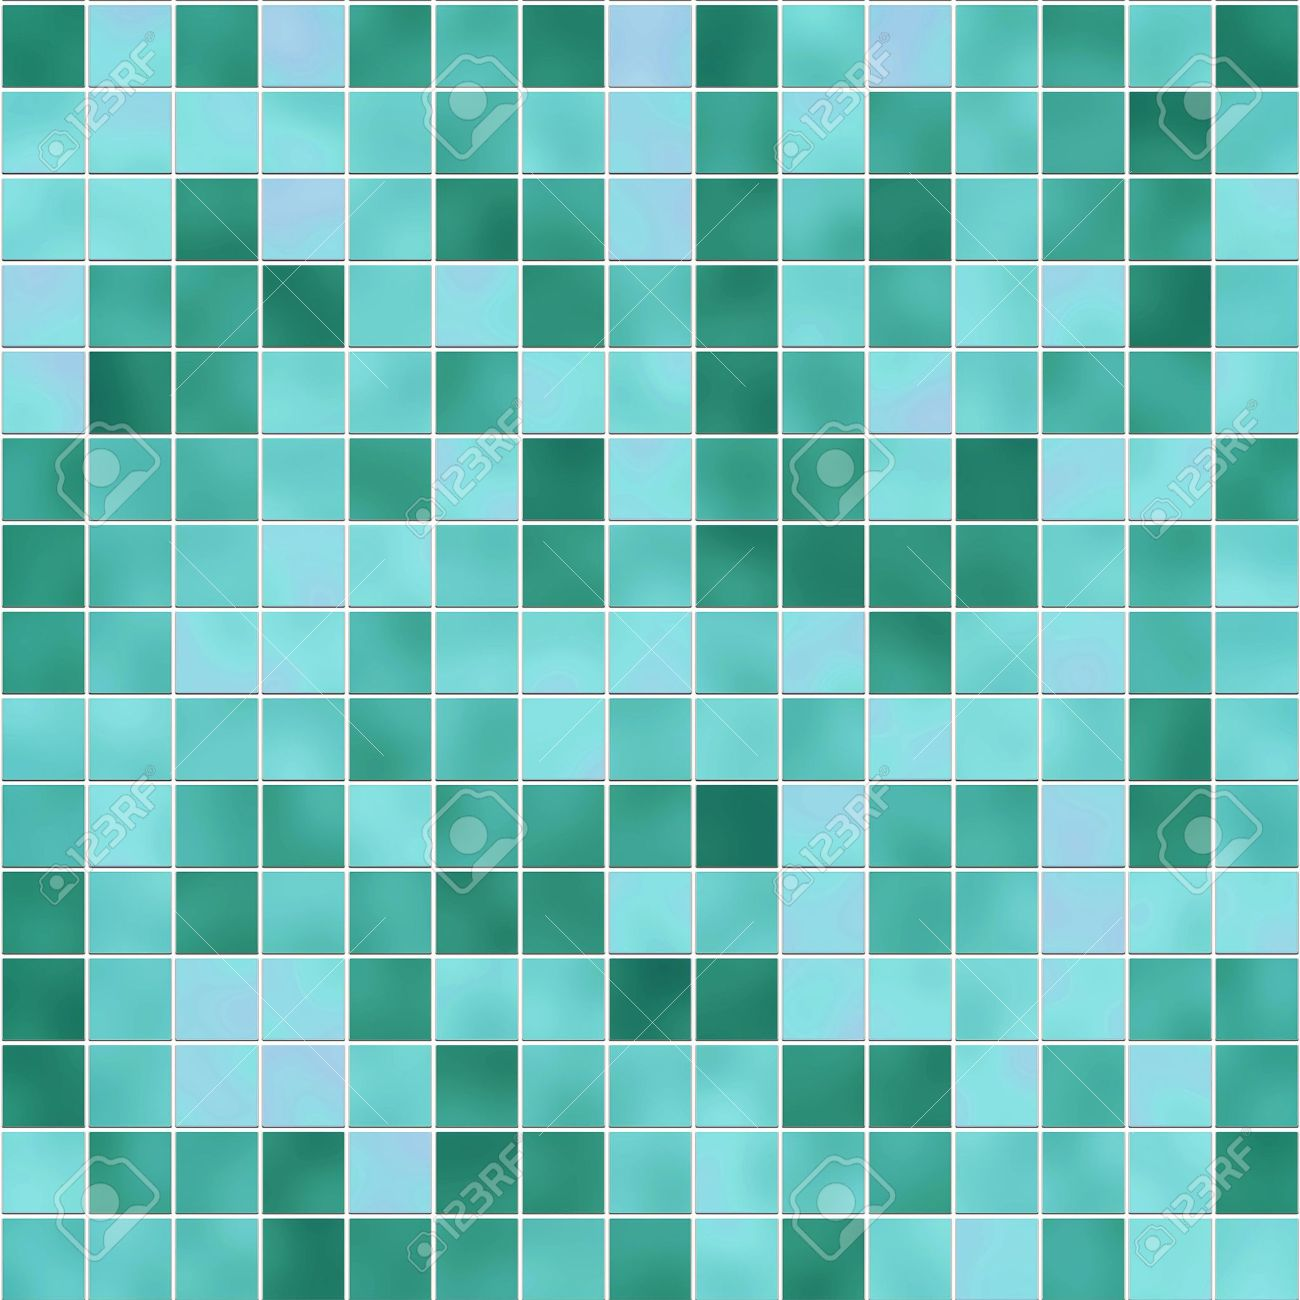 small tiles texture in diferent shades of green stock photo